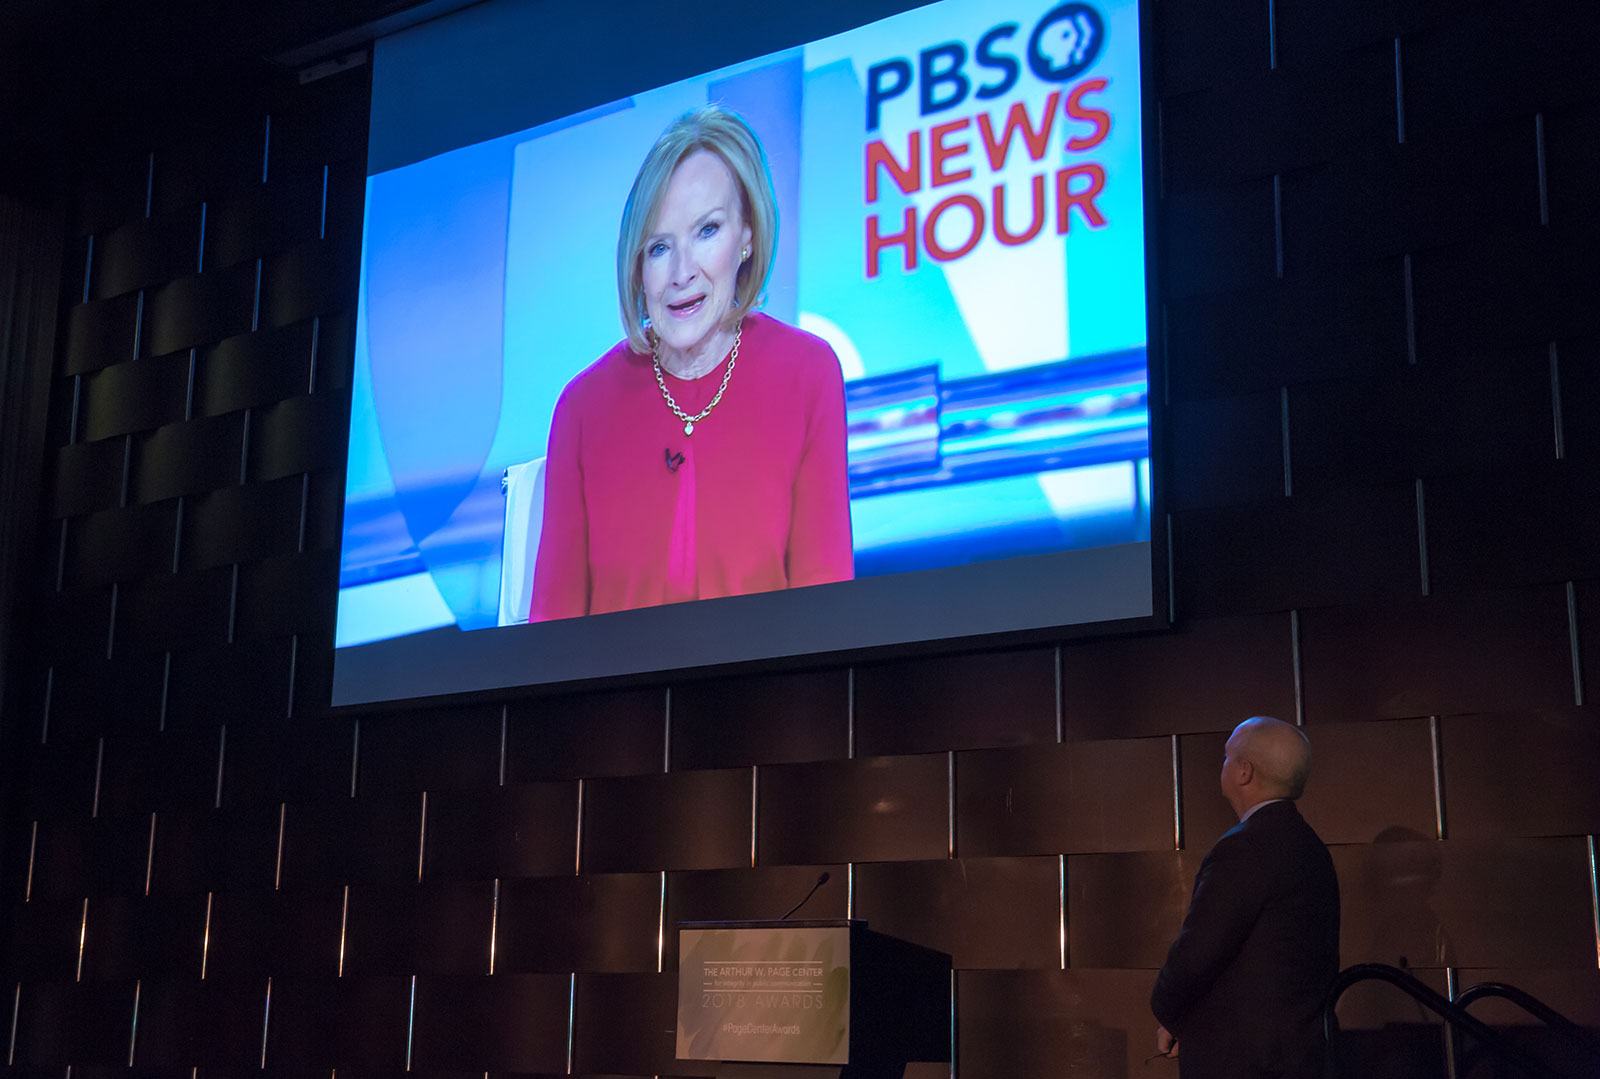 By video, PBS Newshour host Judy Woodruff shares memories of her late friend and colleague Gwen Ifill.